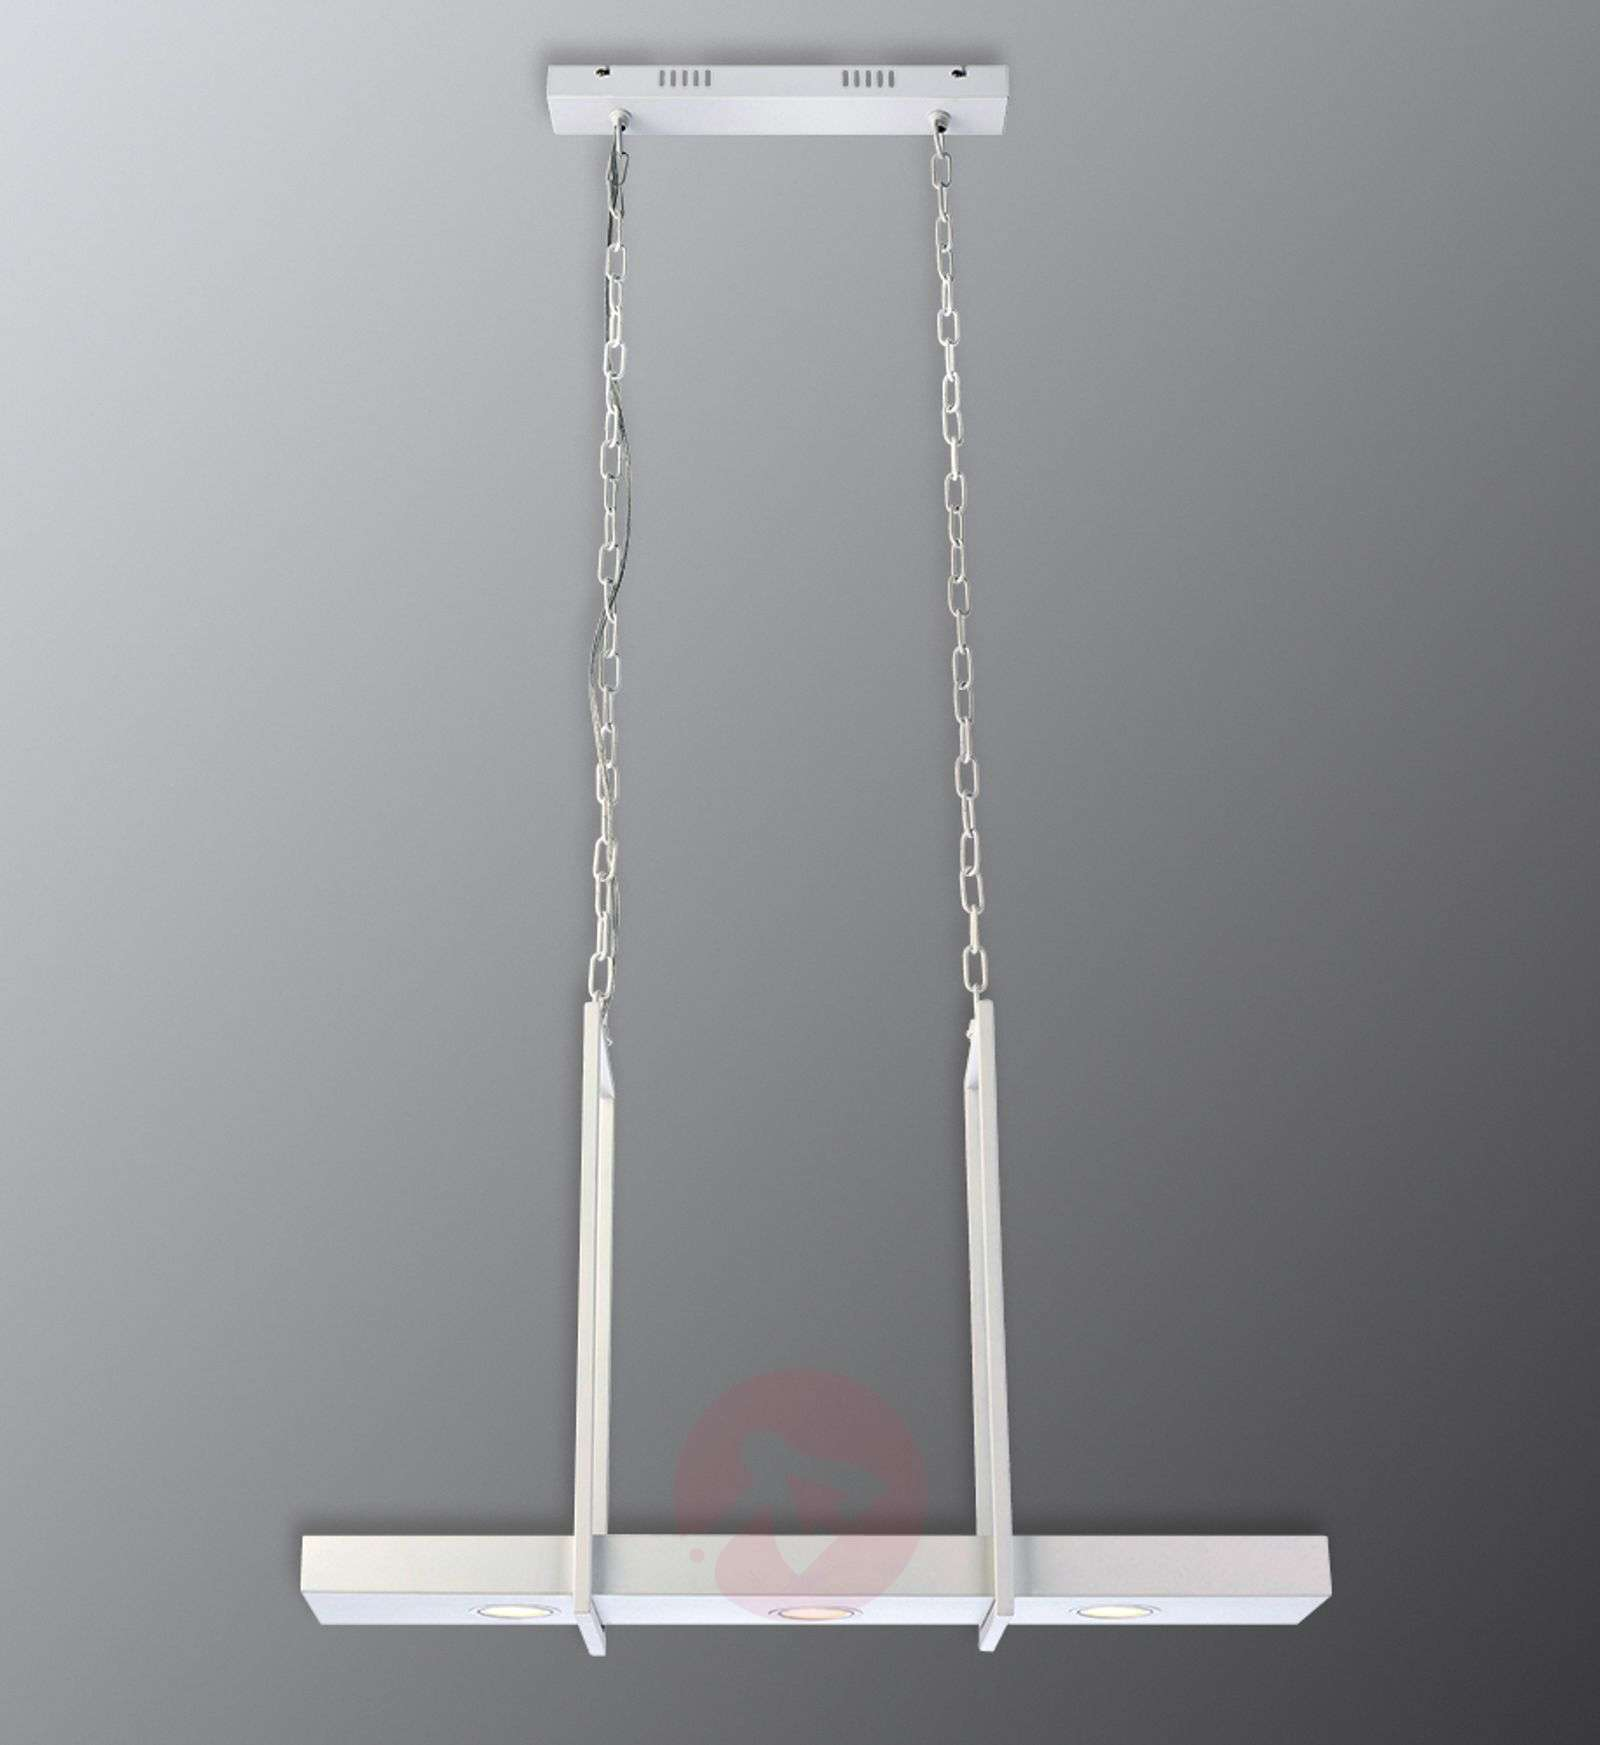 LED hanging light Tray in white-6505587-01